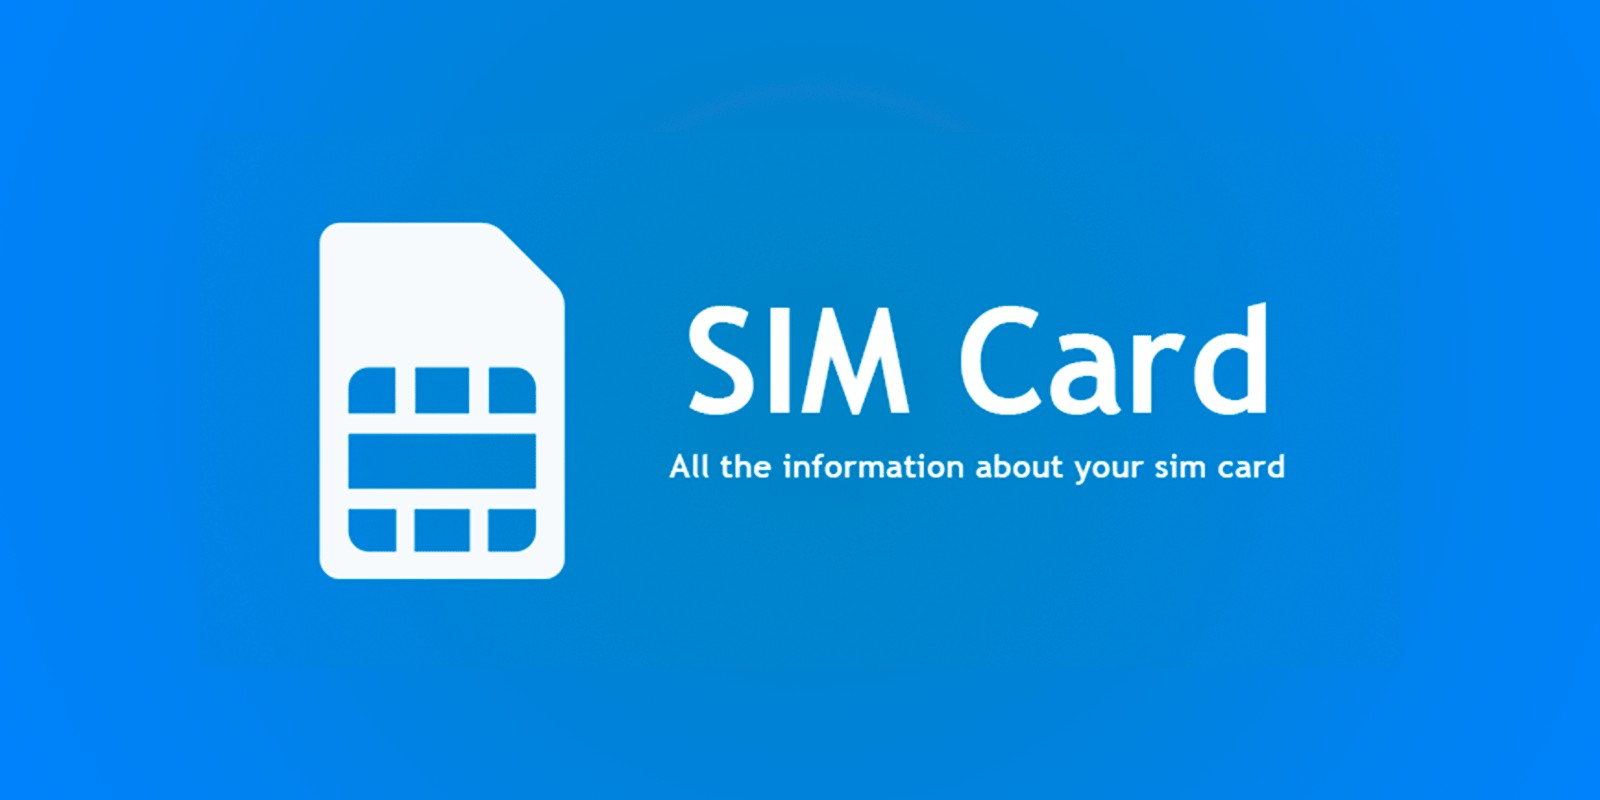 SIM Card - Android Source Code